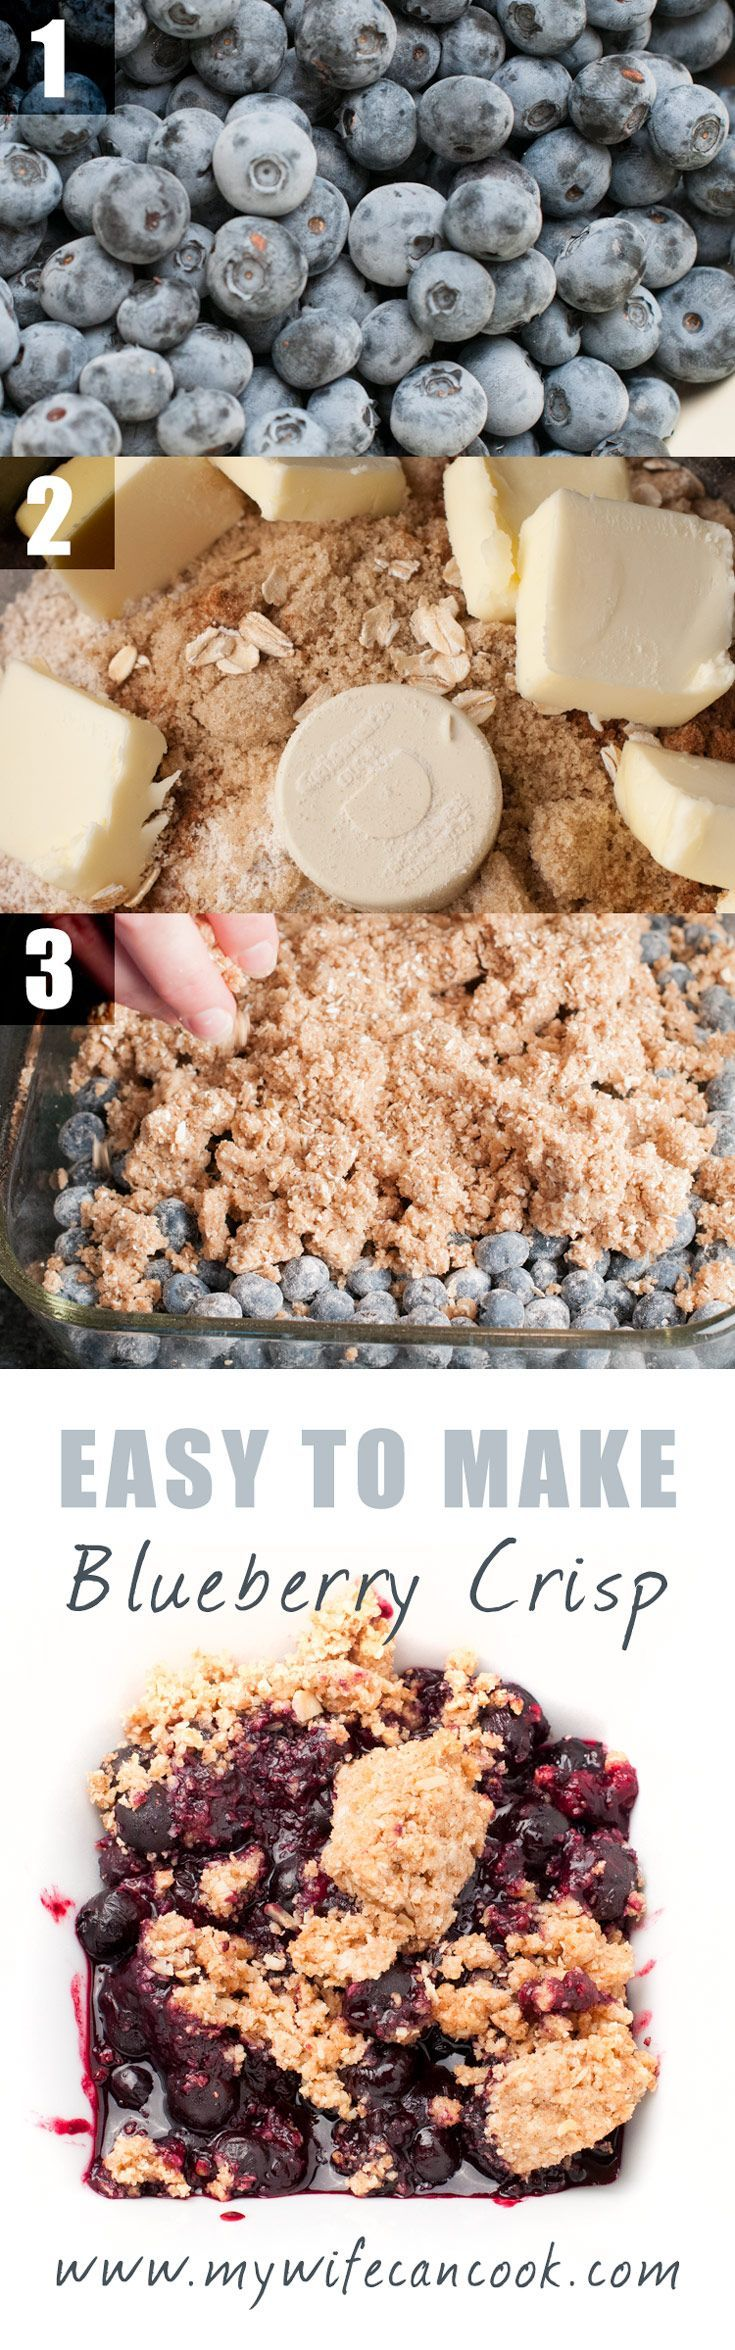 This Easy Blueberry Crisp is a great dessert when fresh blueberries are in season, but can also be made with frozen blueberries. We make frozen blueberry crisp served with vanilla ice cream on dreary winter days when we're stuck inside as a form of therapy for the winter blues and a reminder that warmer days will soon bloom. And when they do, fresh blueberry crisp! This dessert is super easy recipe to make. It's a must try in blueberry season, but you can try it with frozen blueberries as…